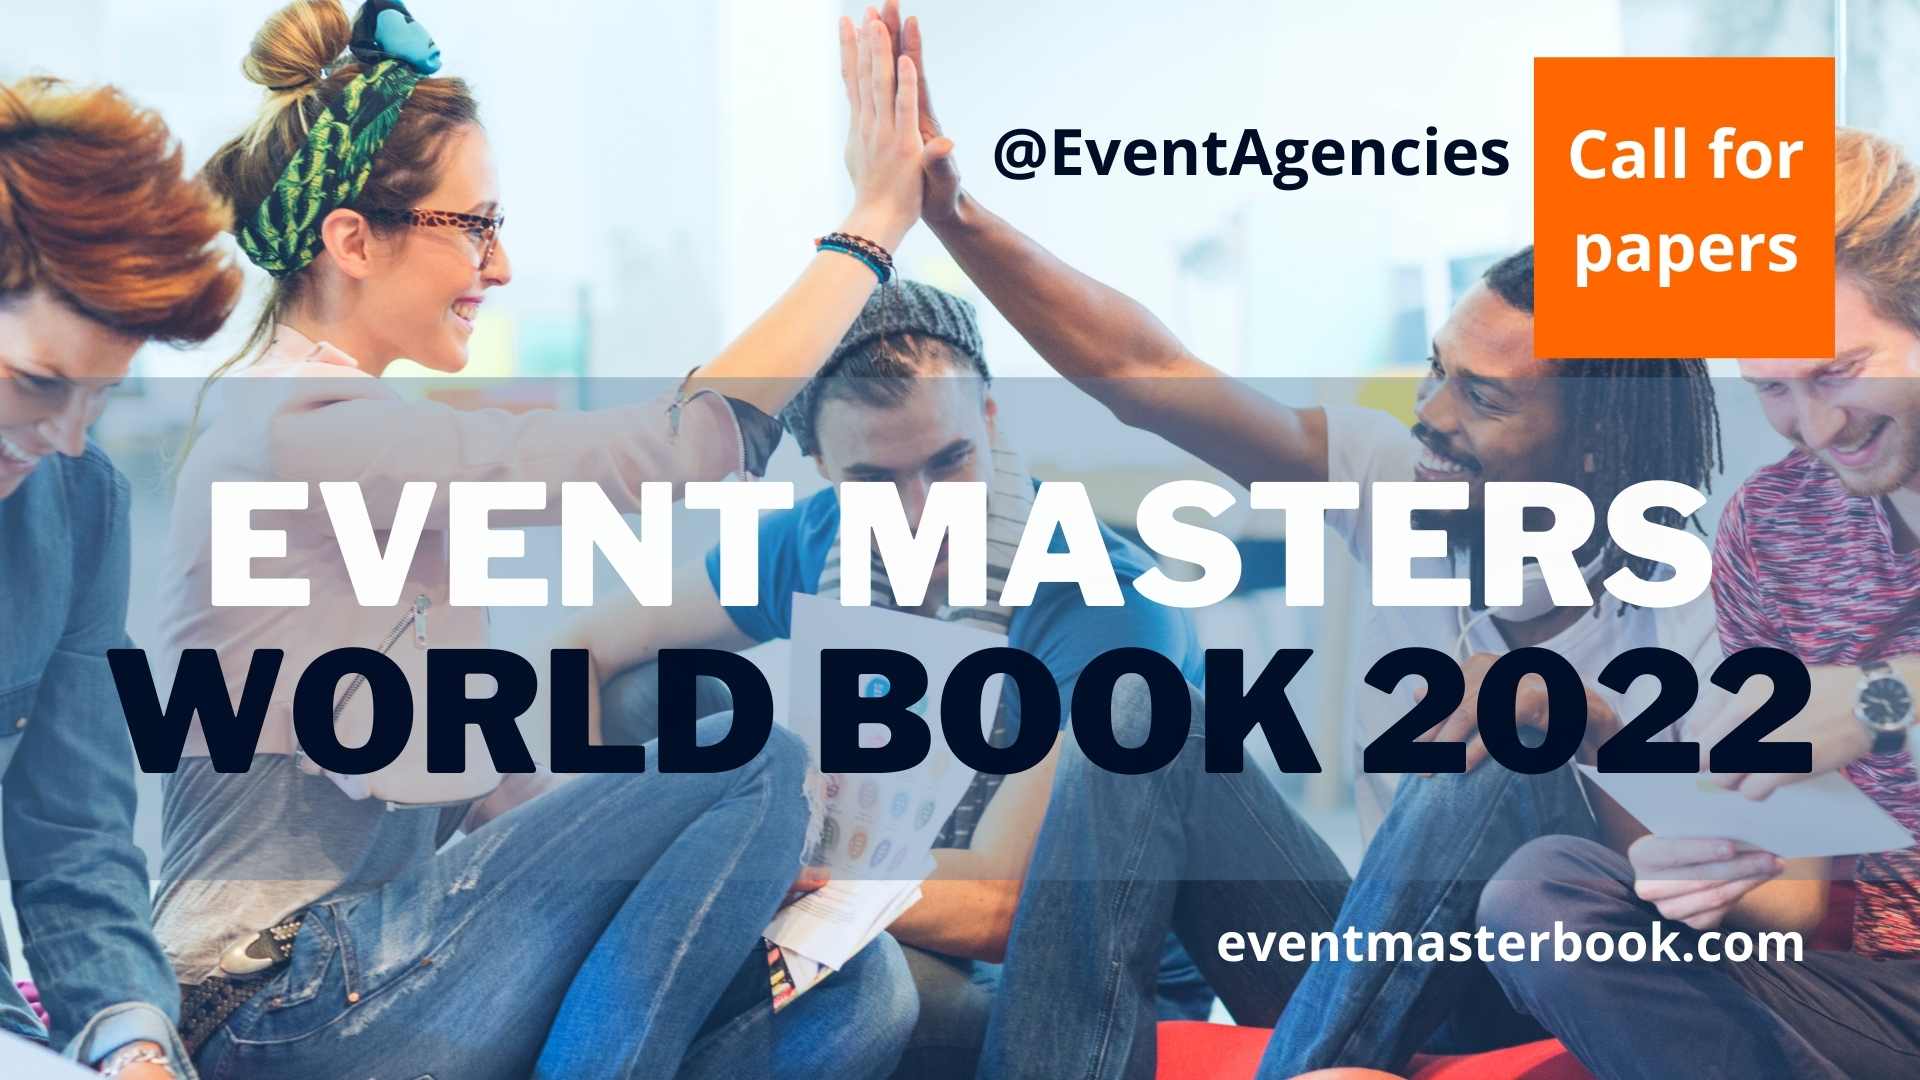 EVENT MASTERS WORLD BOOK 2022 by eventmasterbook.com